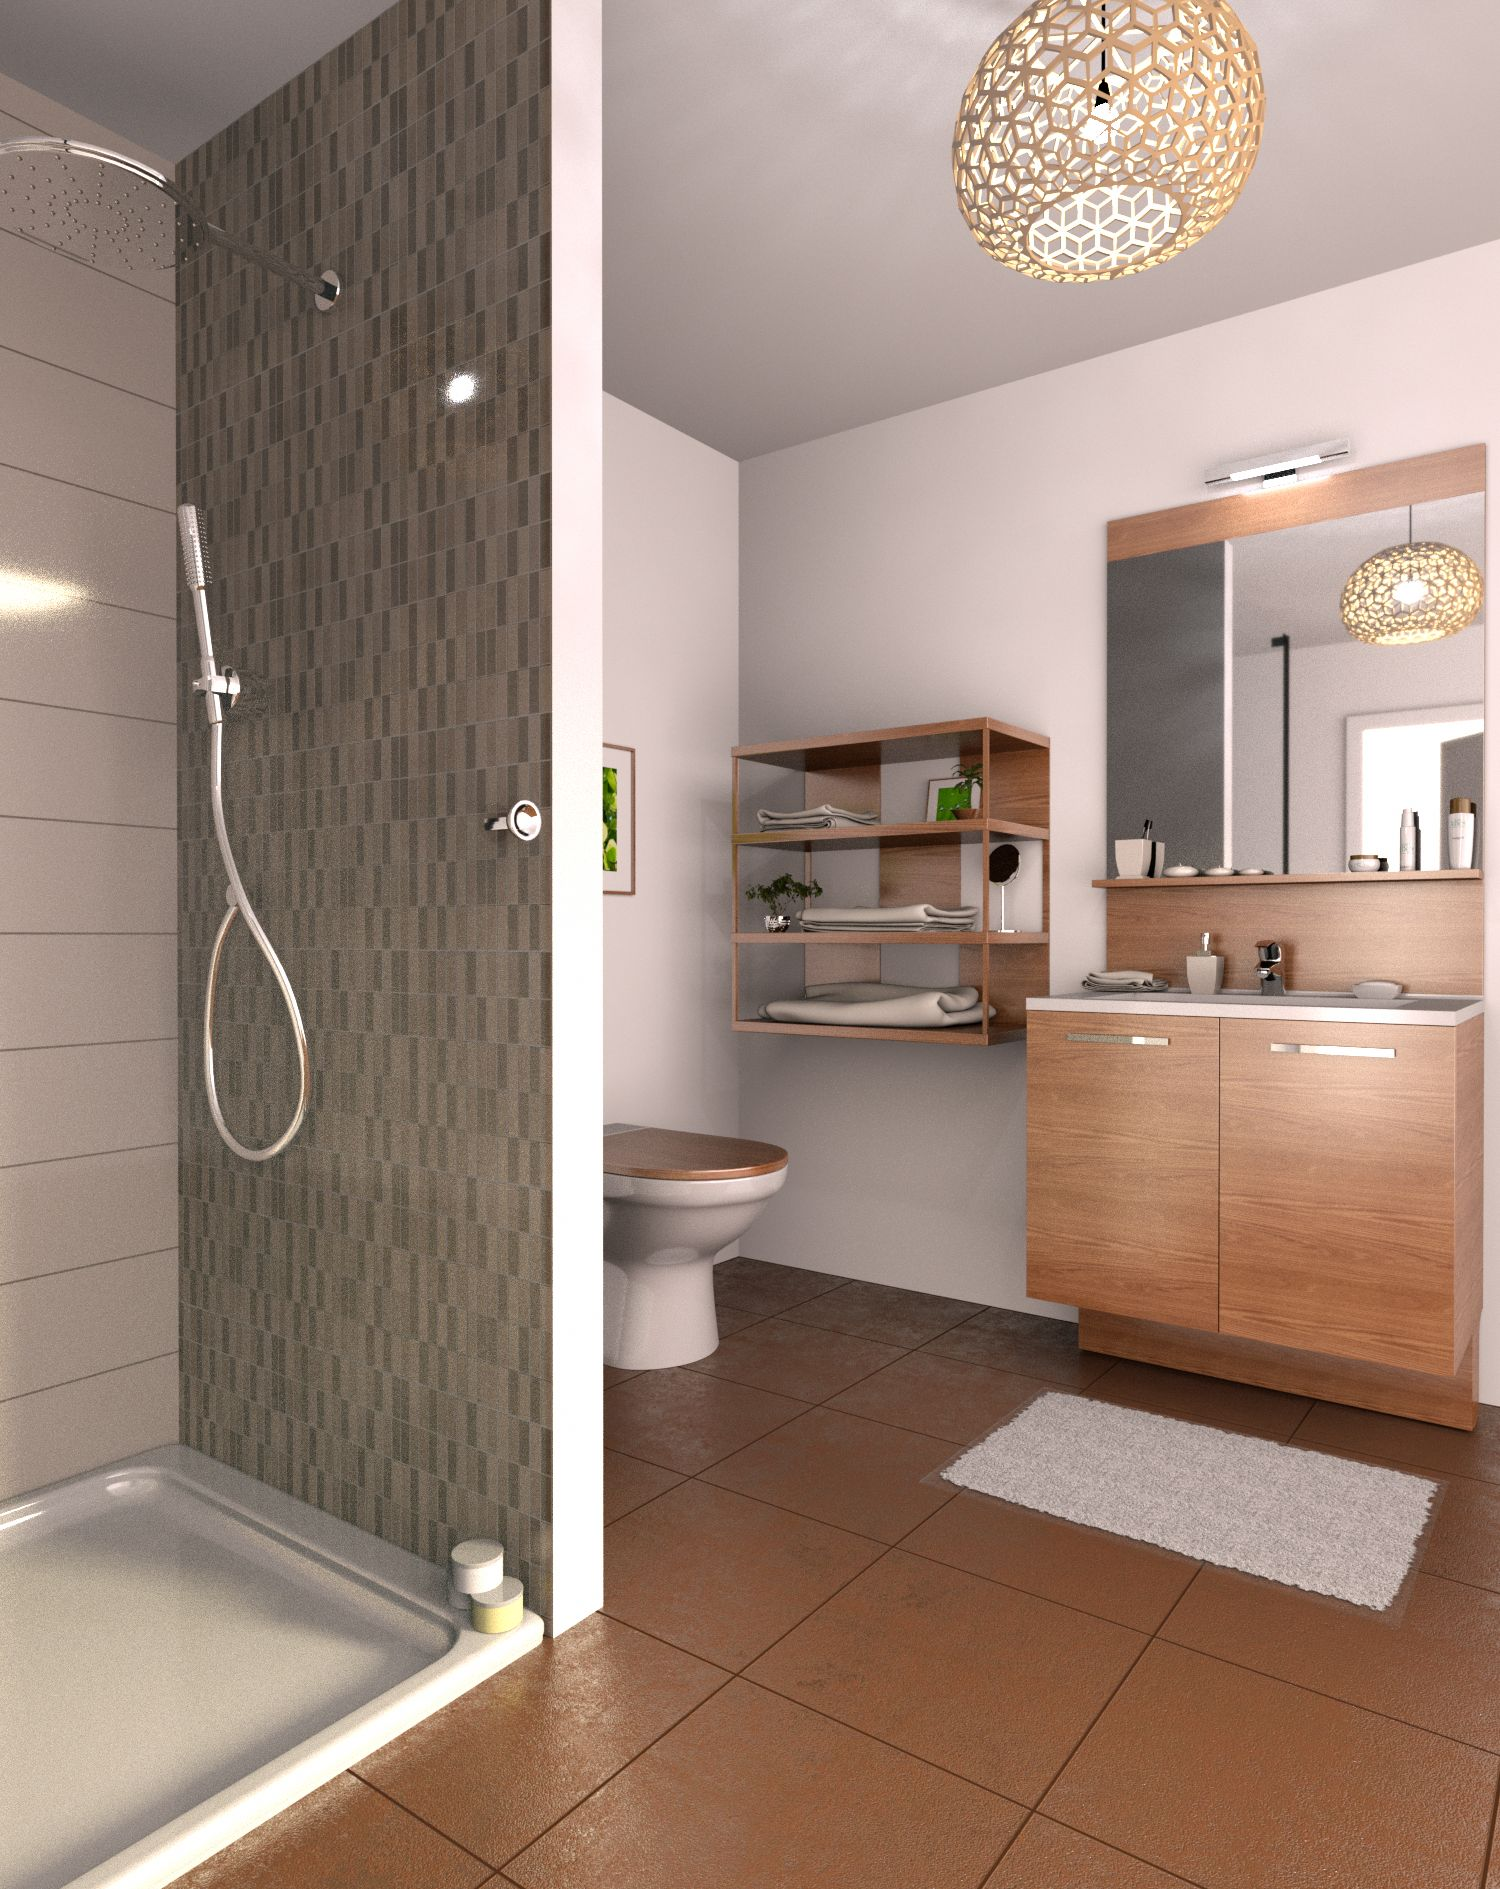 Bathroom with tile shower01Bathroom remodel   Plan your own bathroom in 3D with Cedar Architect. Remodeling Your Own Bathroom. Home Design Ideas